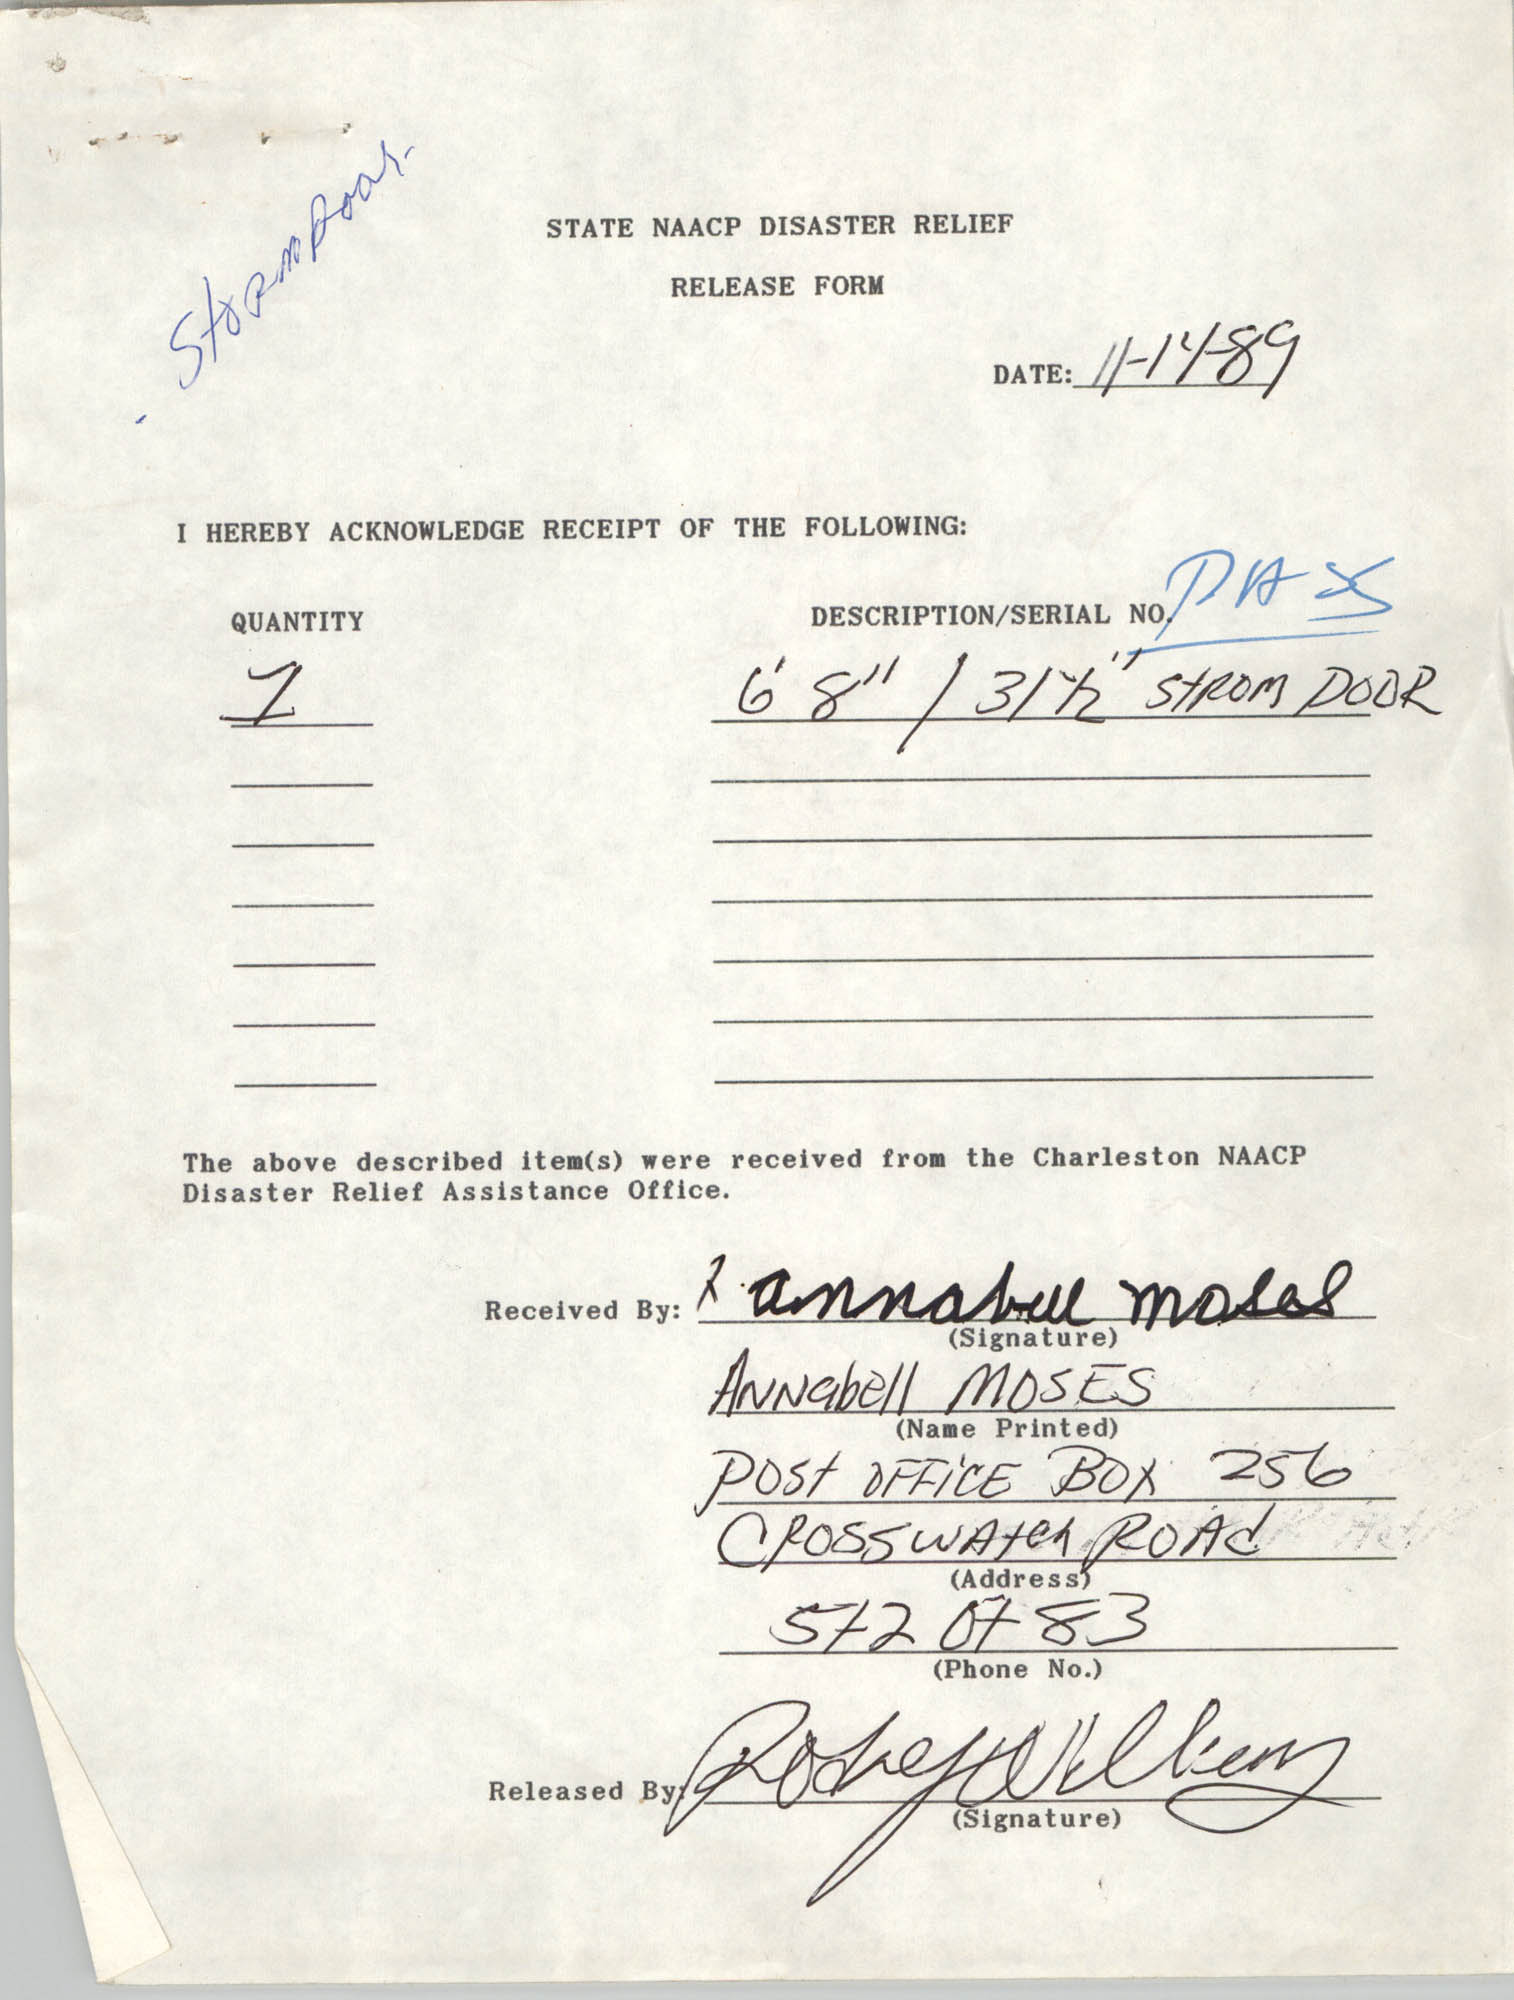 State NAACP Disaster Relief, Hurricane Huge Release Form, 1989, Page 2